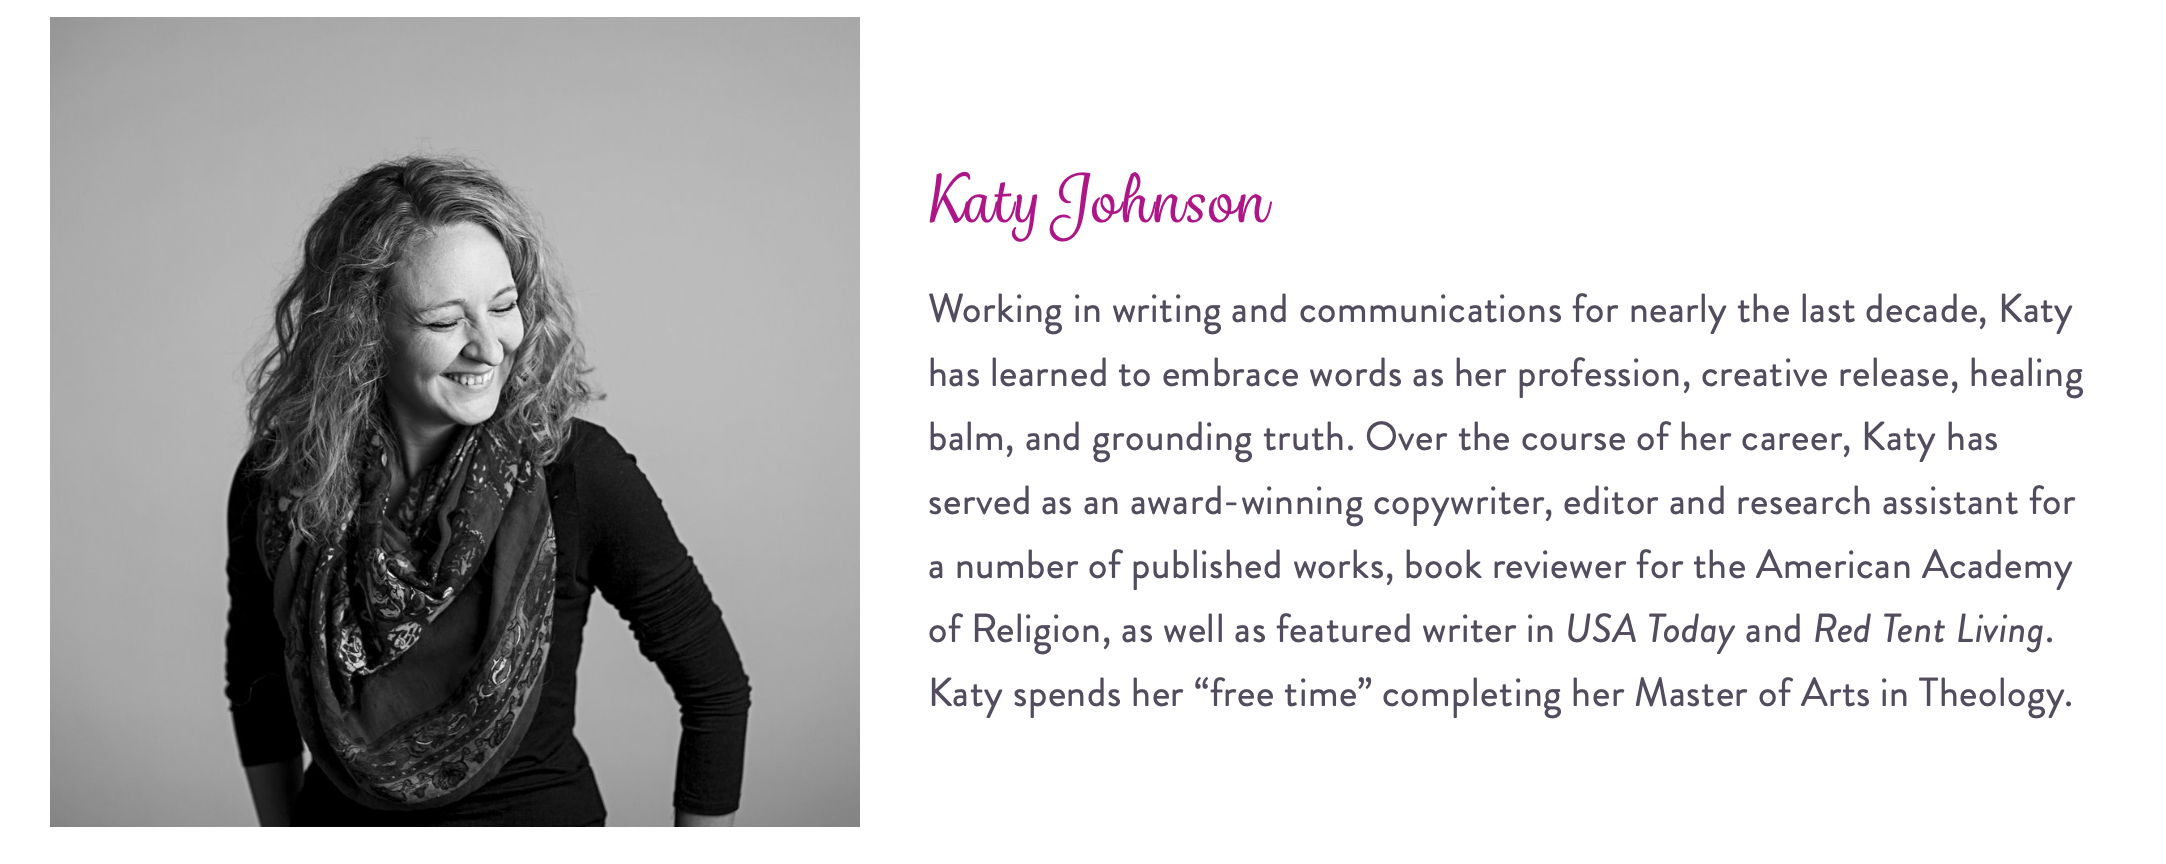 "Working in writing and communications for nearly the last decade, Katy has learned to embrace words as her profession, creative release, healing balm, and grounding truth. Over the course of her career, Katy has served as an award-winning copywriter, editor and research assistant for a number of published works, book reviewer for the American Academy of Religion, as well as featured writer in USA Today and Red Tent Living. Katy spends her ""free time"" completing her Master of Arts in Theology."